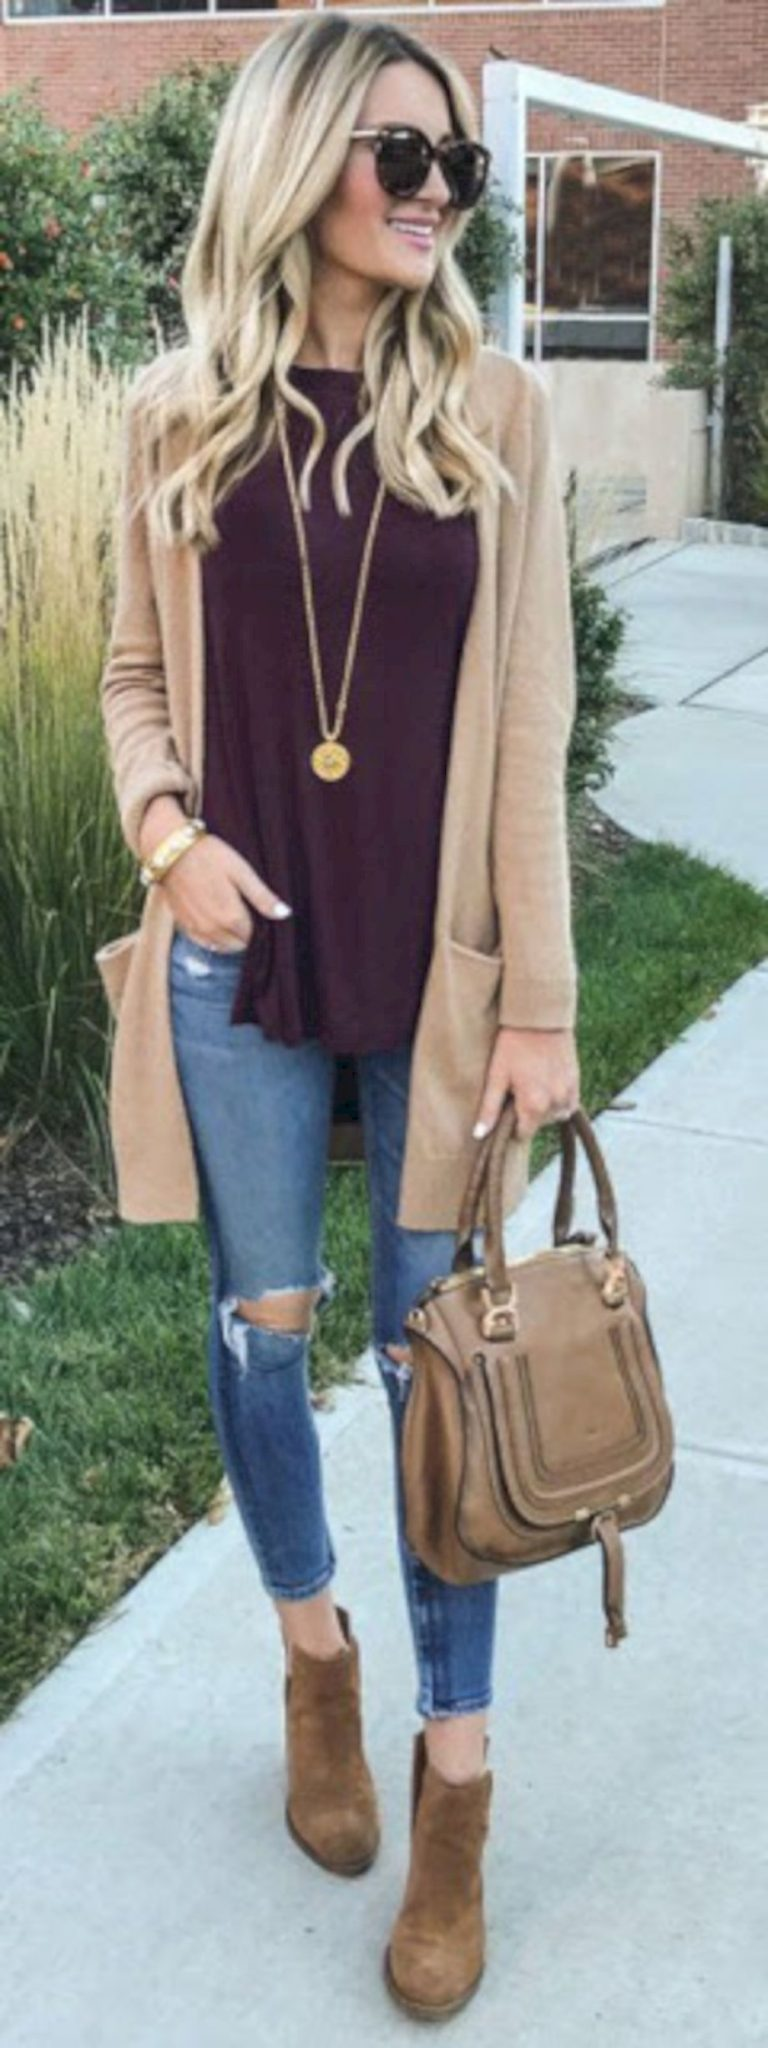 Cardigan outfit 39